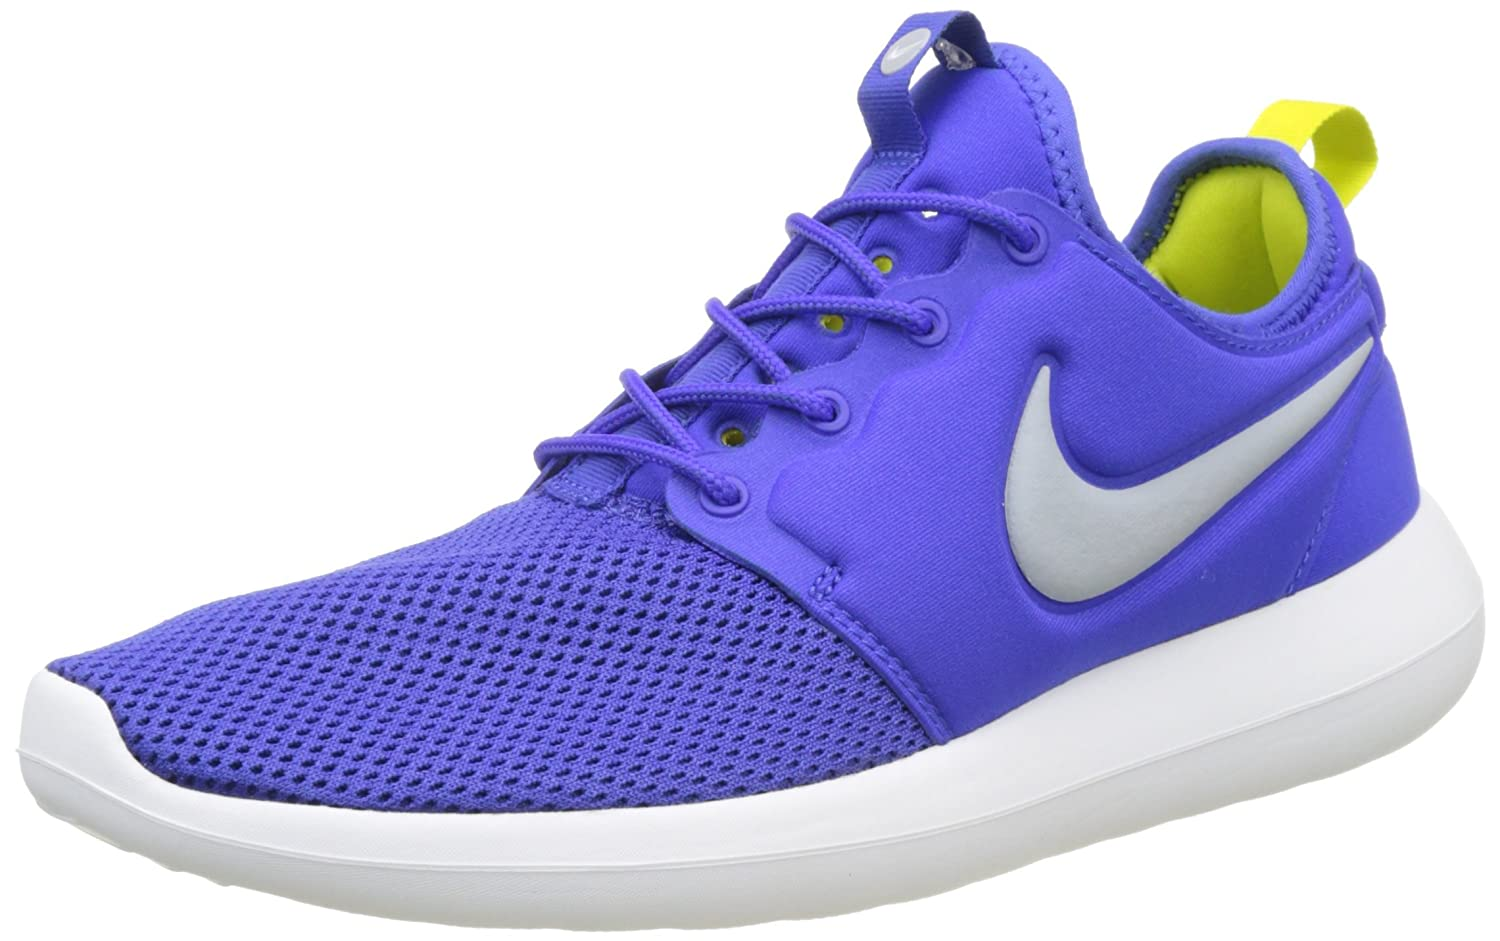 NIKE Men's Roshe Two Running Shoe B01N3A8IQA 9 D(M) US|Paramount Blue/Wolf Grey